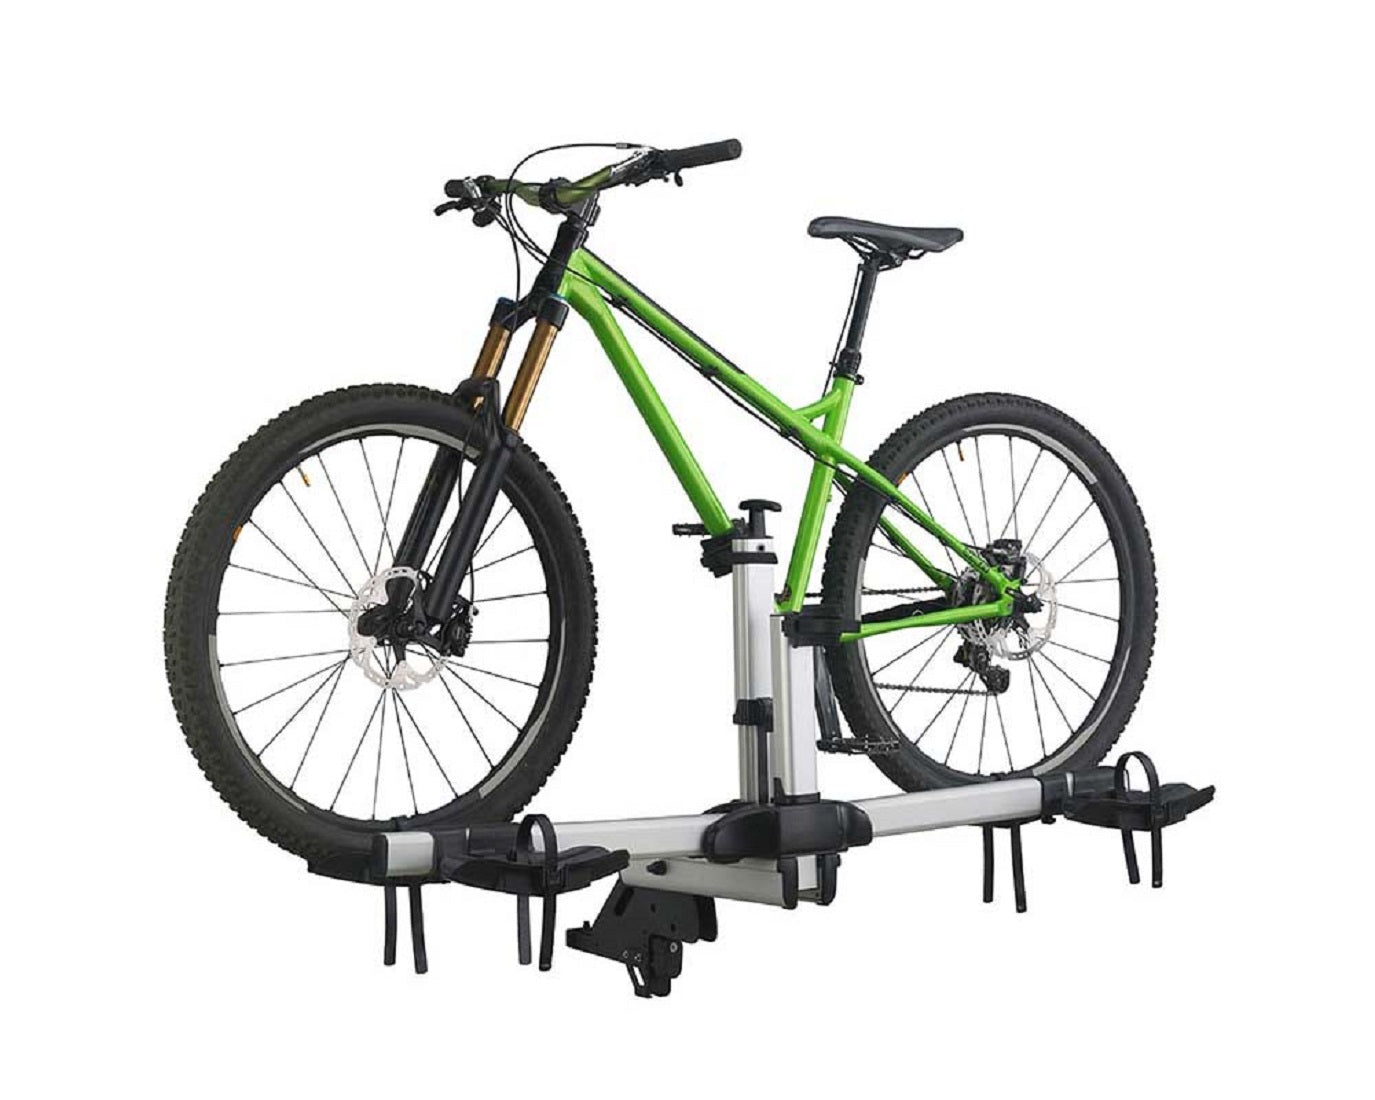 INNO Folding Hitch Quick Mount 2 Bike Carrier INH330